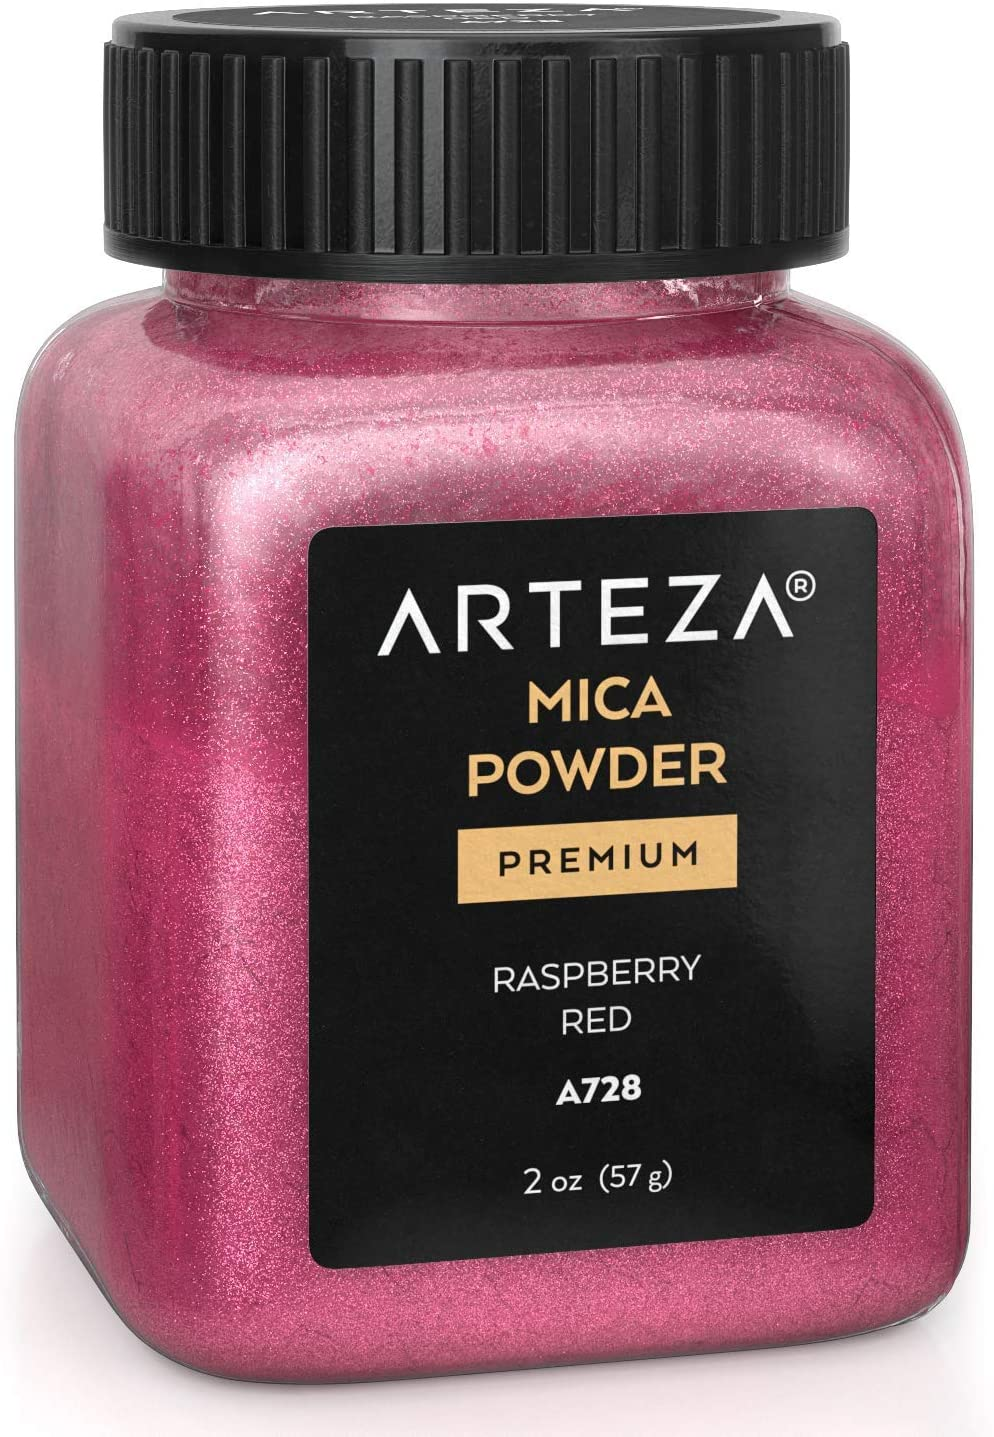 Arteza Mica Powder for Epoxy Resin, Raspberry Red A728, 2 oz Bottle, for Soap Making, Nail Polish, Bath Bombs, Candle & Slime Making